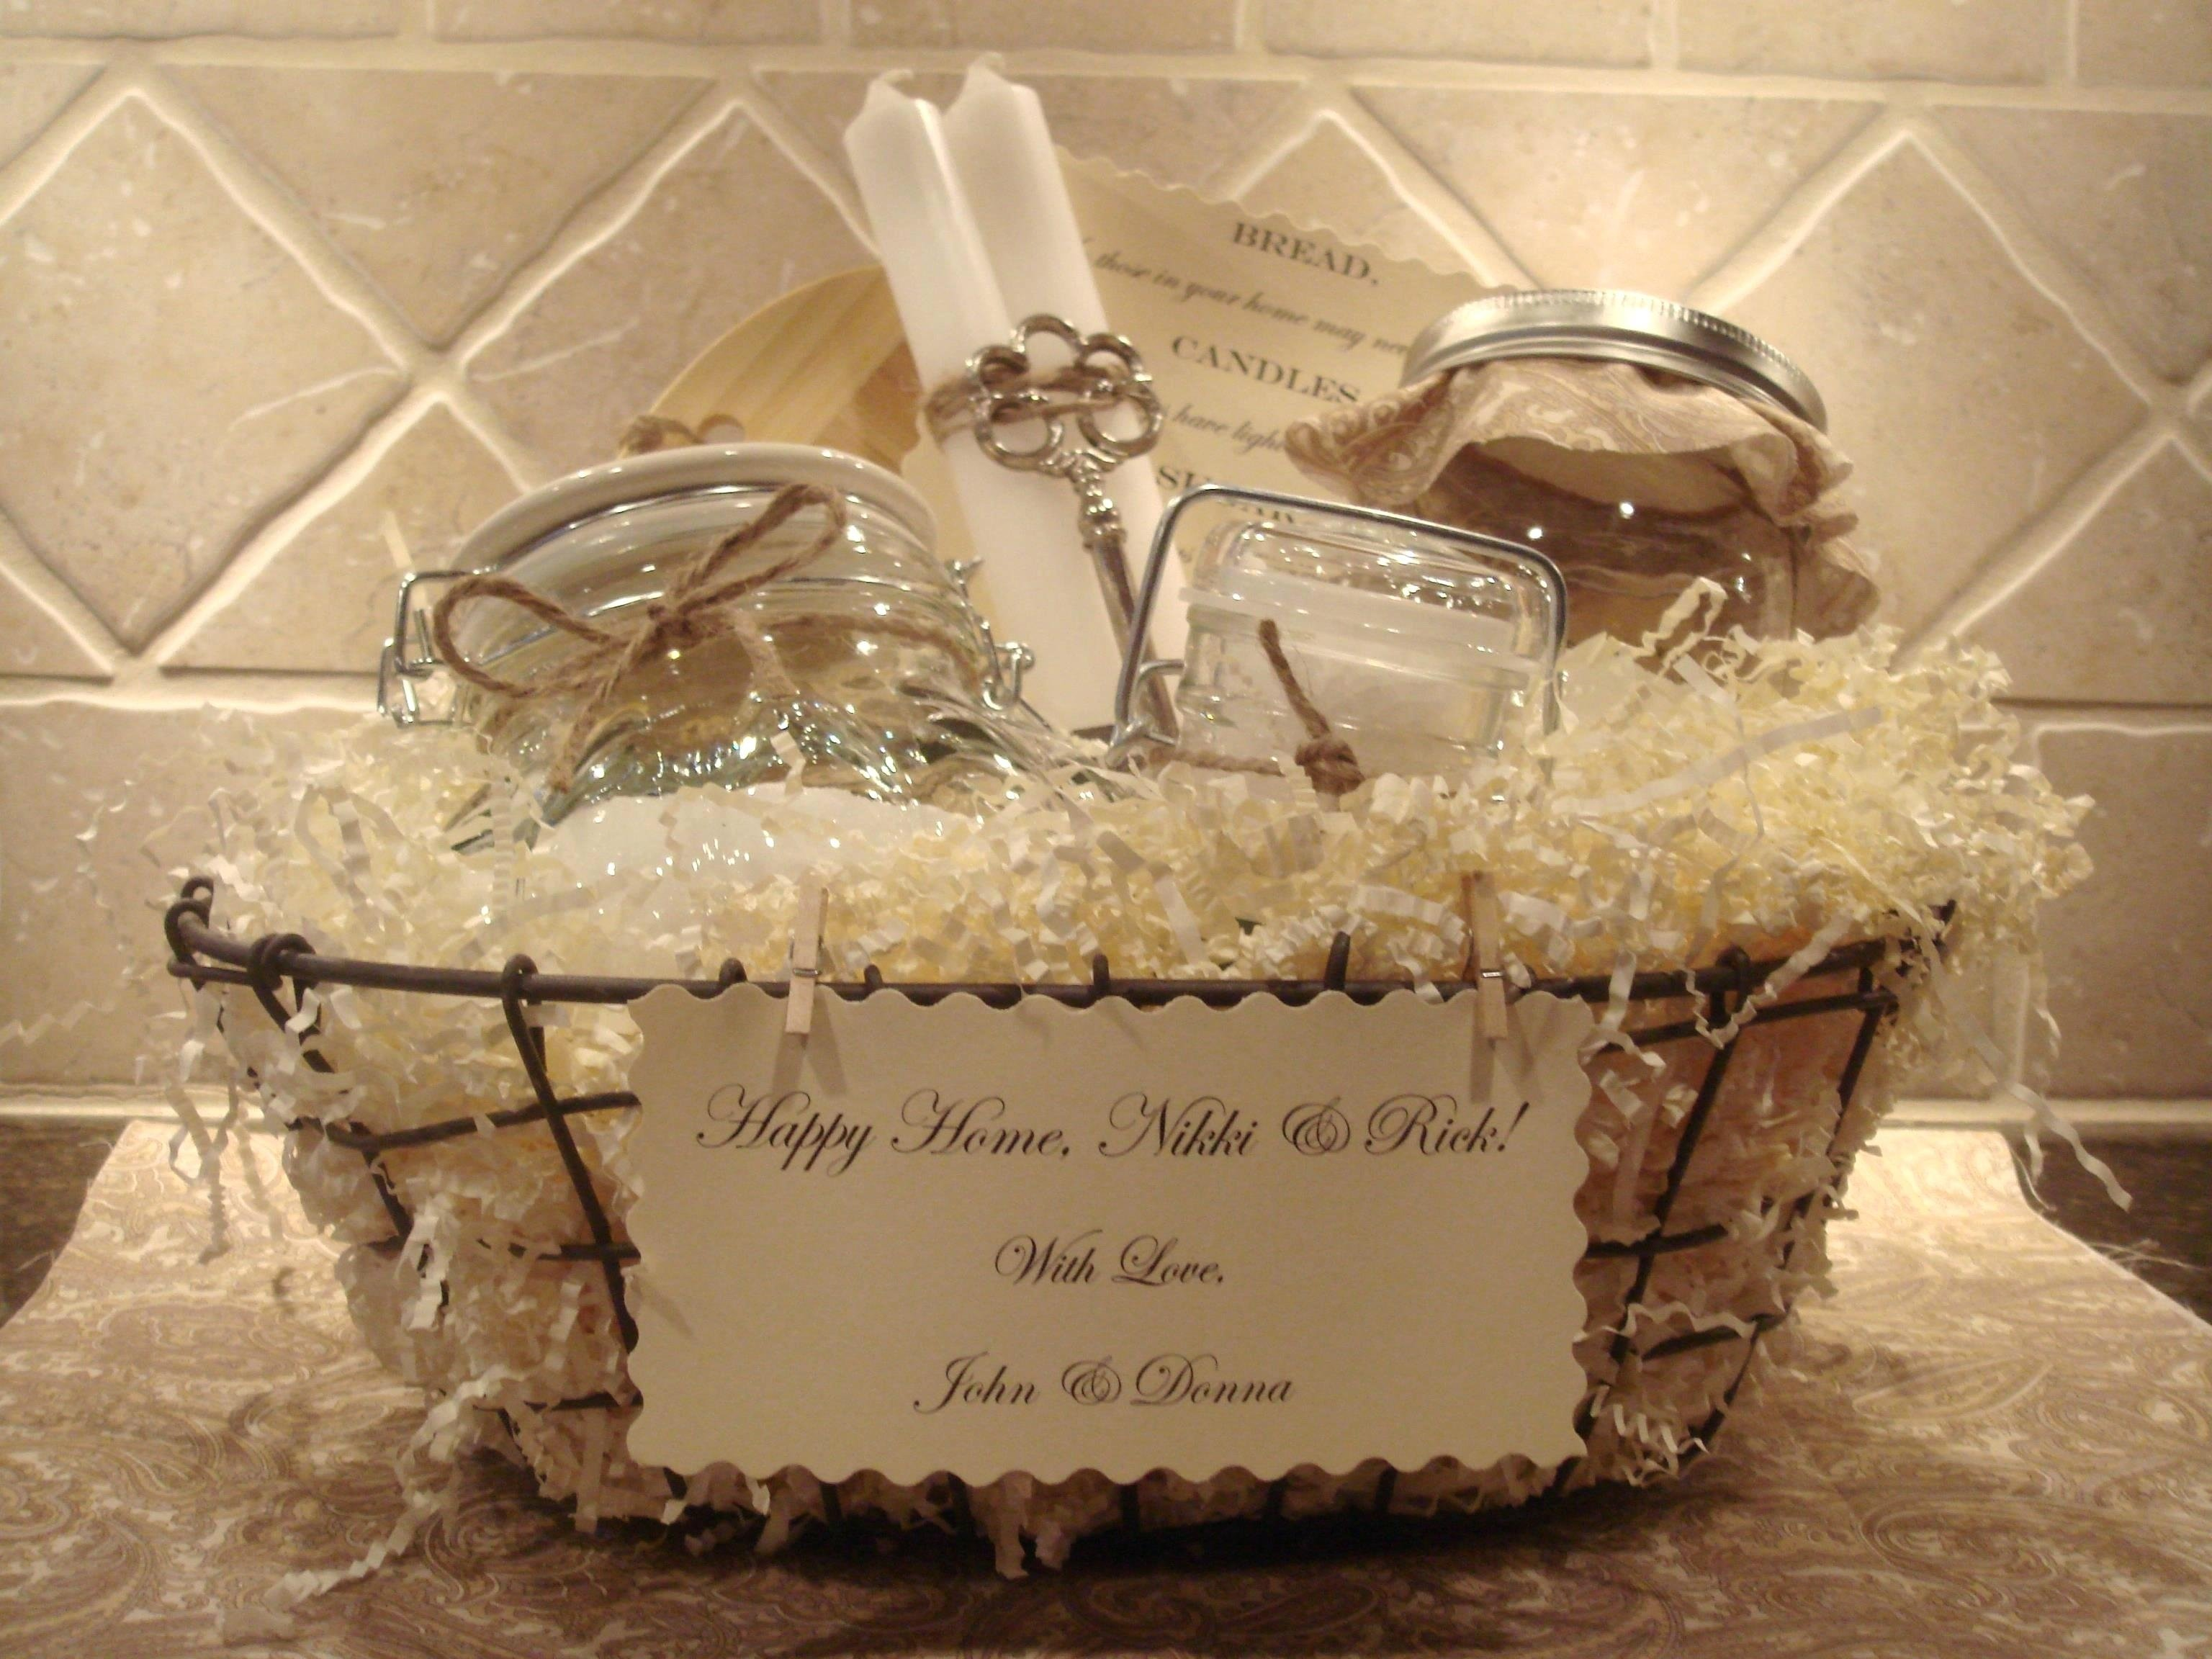 10 Beautiful Housewarming Gifts Ideas For Couples housewarming gift ideas for couple in couples inspirations cool 2020